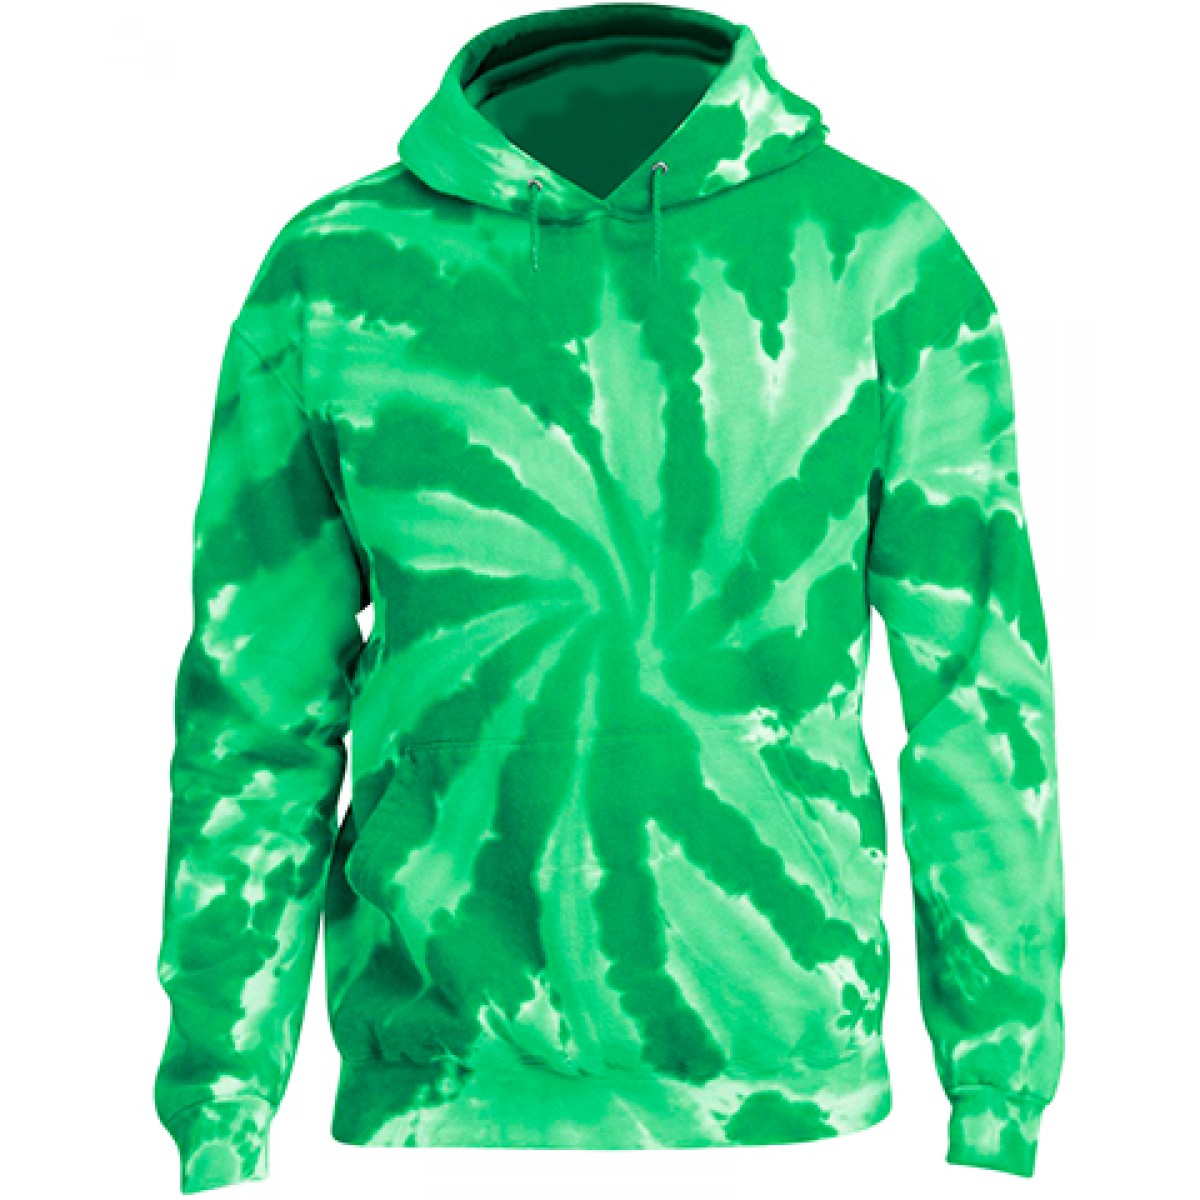 Tie-Dye Pullover Hooded Sweatshirt-Green-S